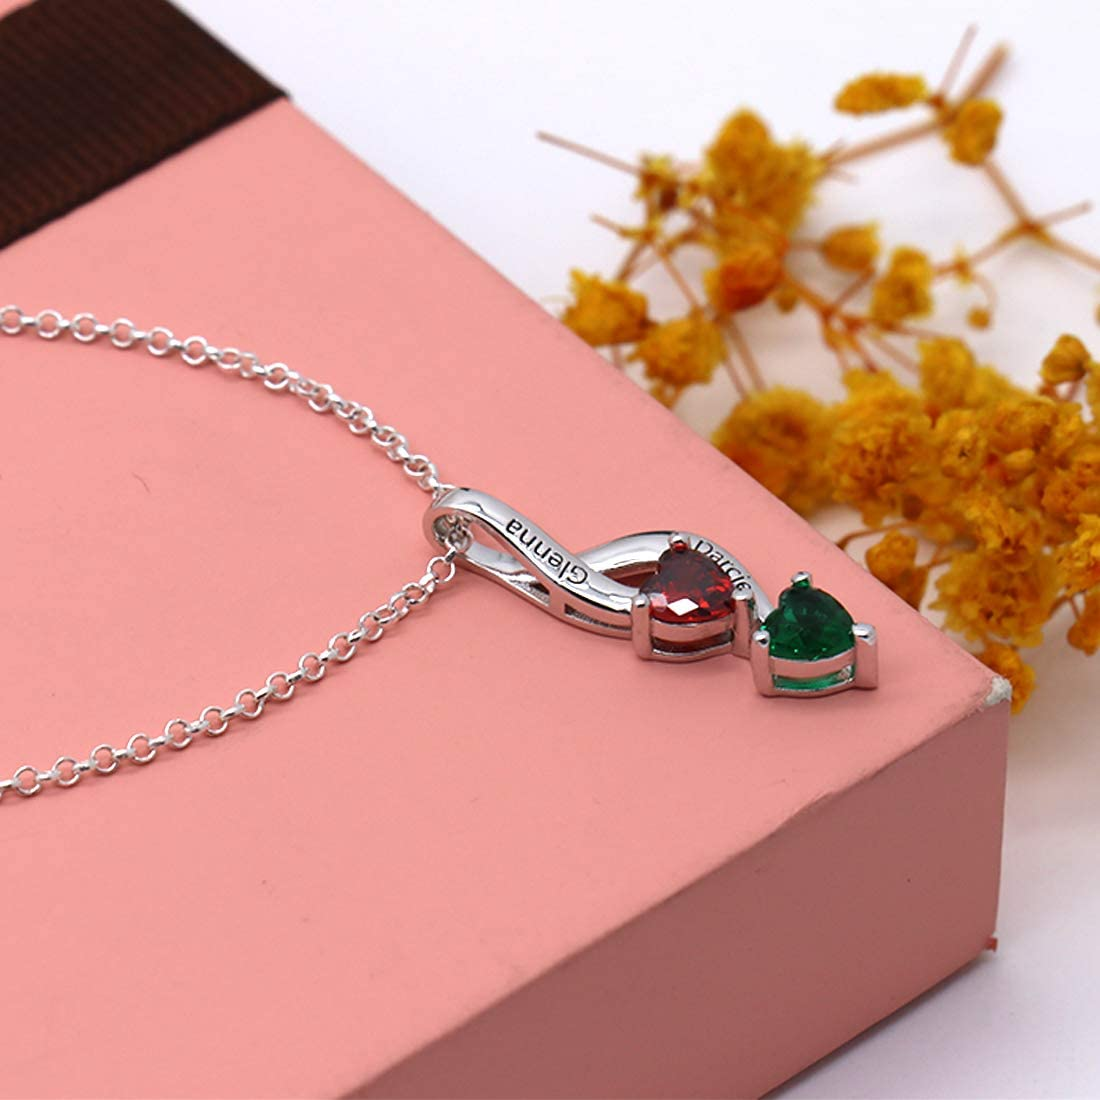 0 0 KIKISHOPQ Personalized 2 Birthstone Mothers Pendant Necklace with 2 Names Family Pendants